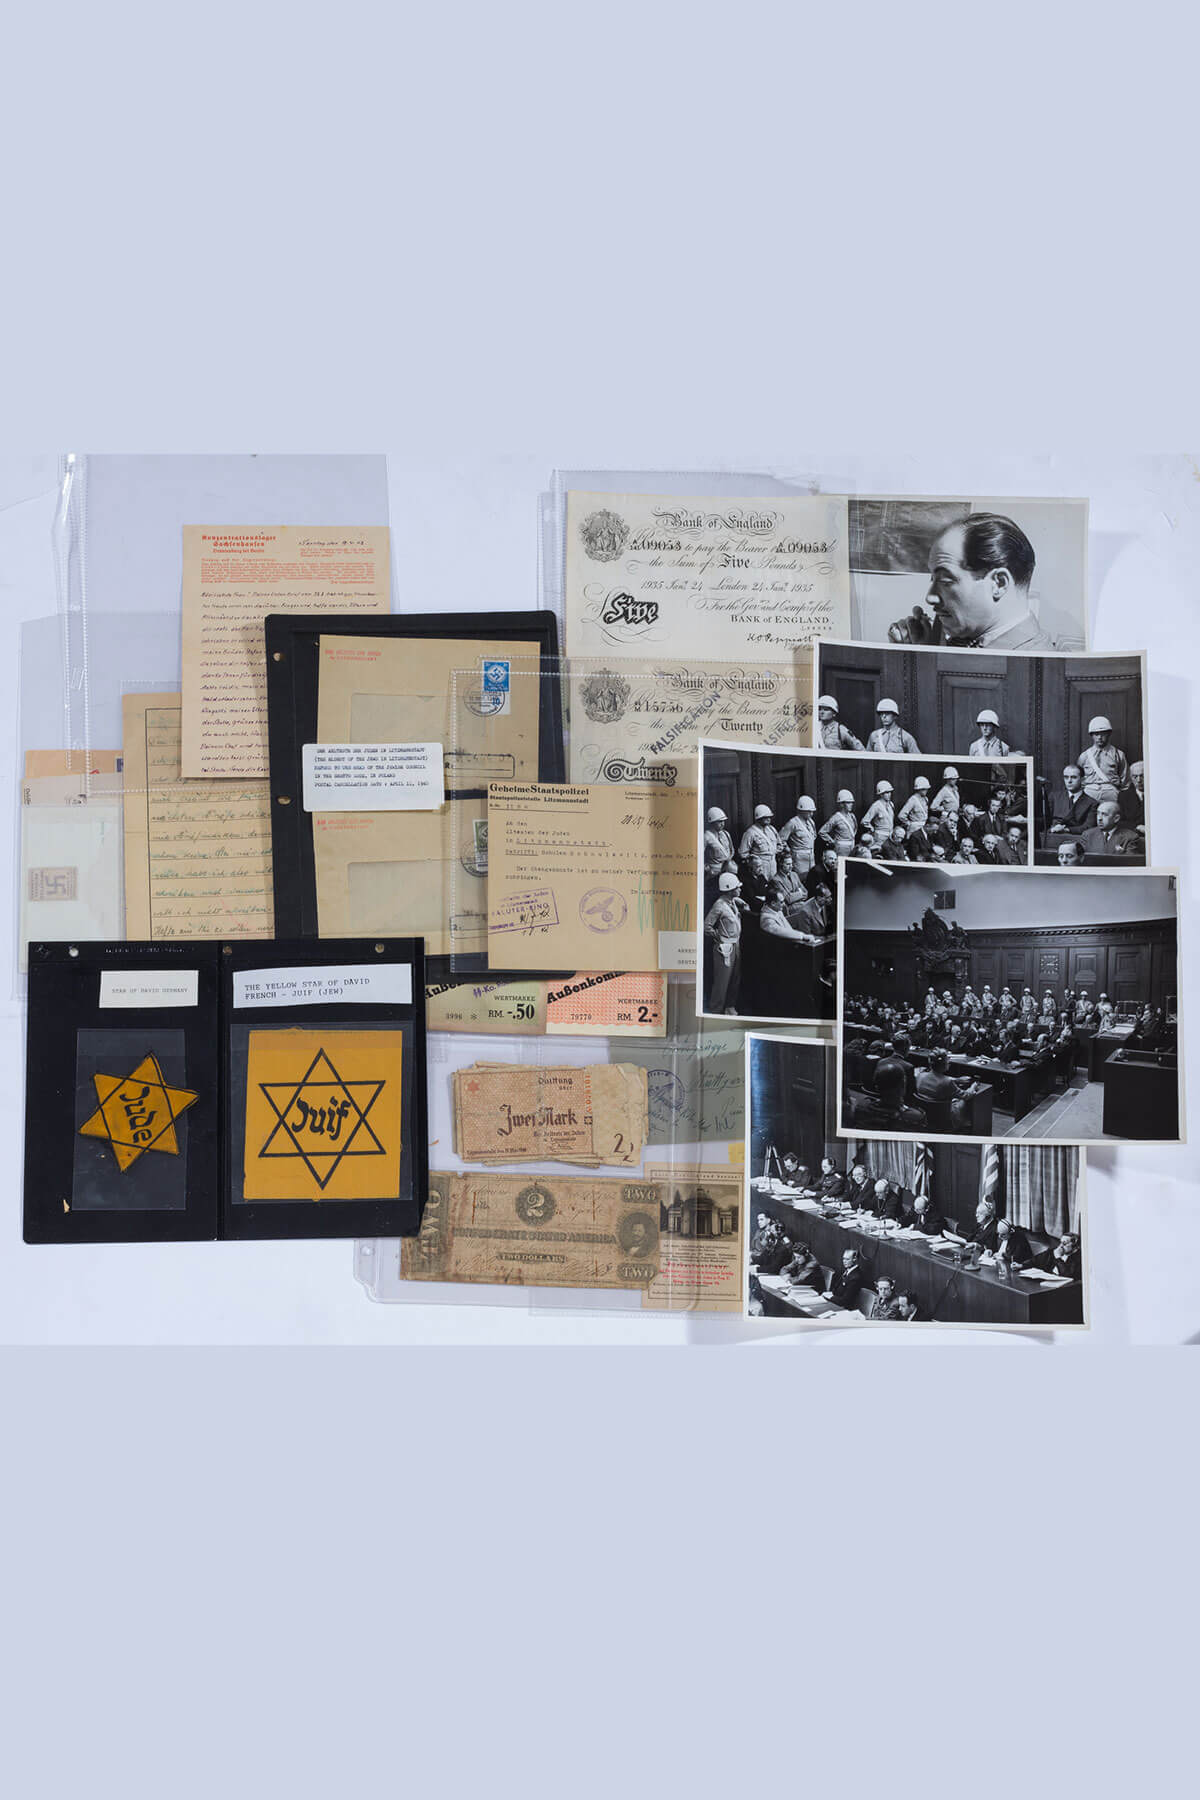 171. The Collection of Nuremberg Trial Related Ephemera from Moses L. Kove